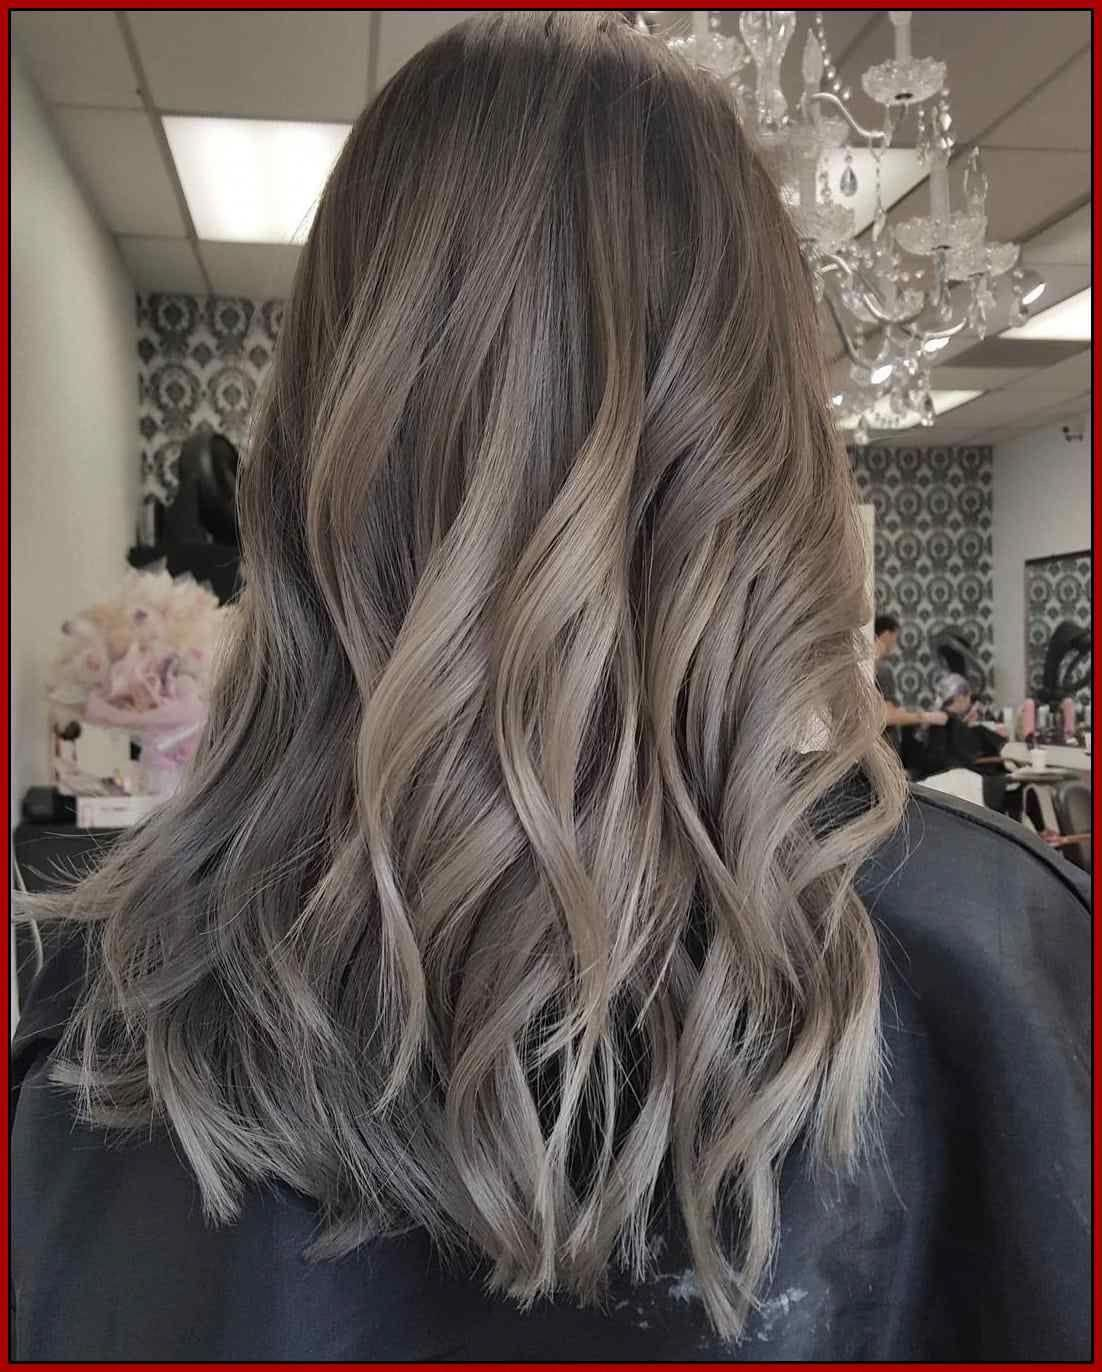 These Blonde Balayage Short Hair Are Fabulous Blondebalayageshorthair Hair Styles Short Hair Balayage Hair Looks